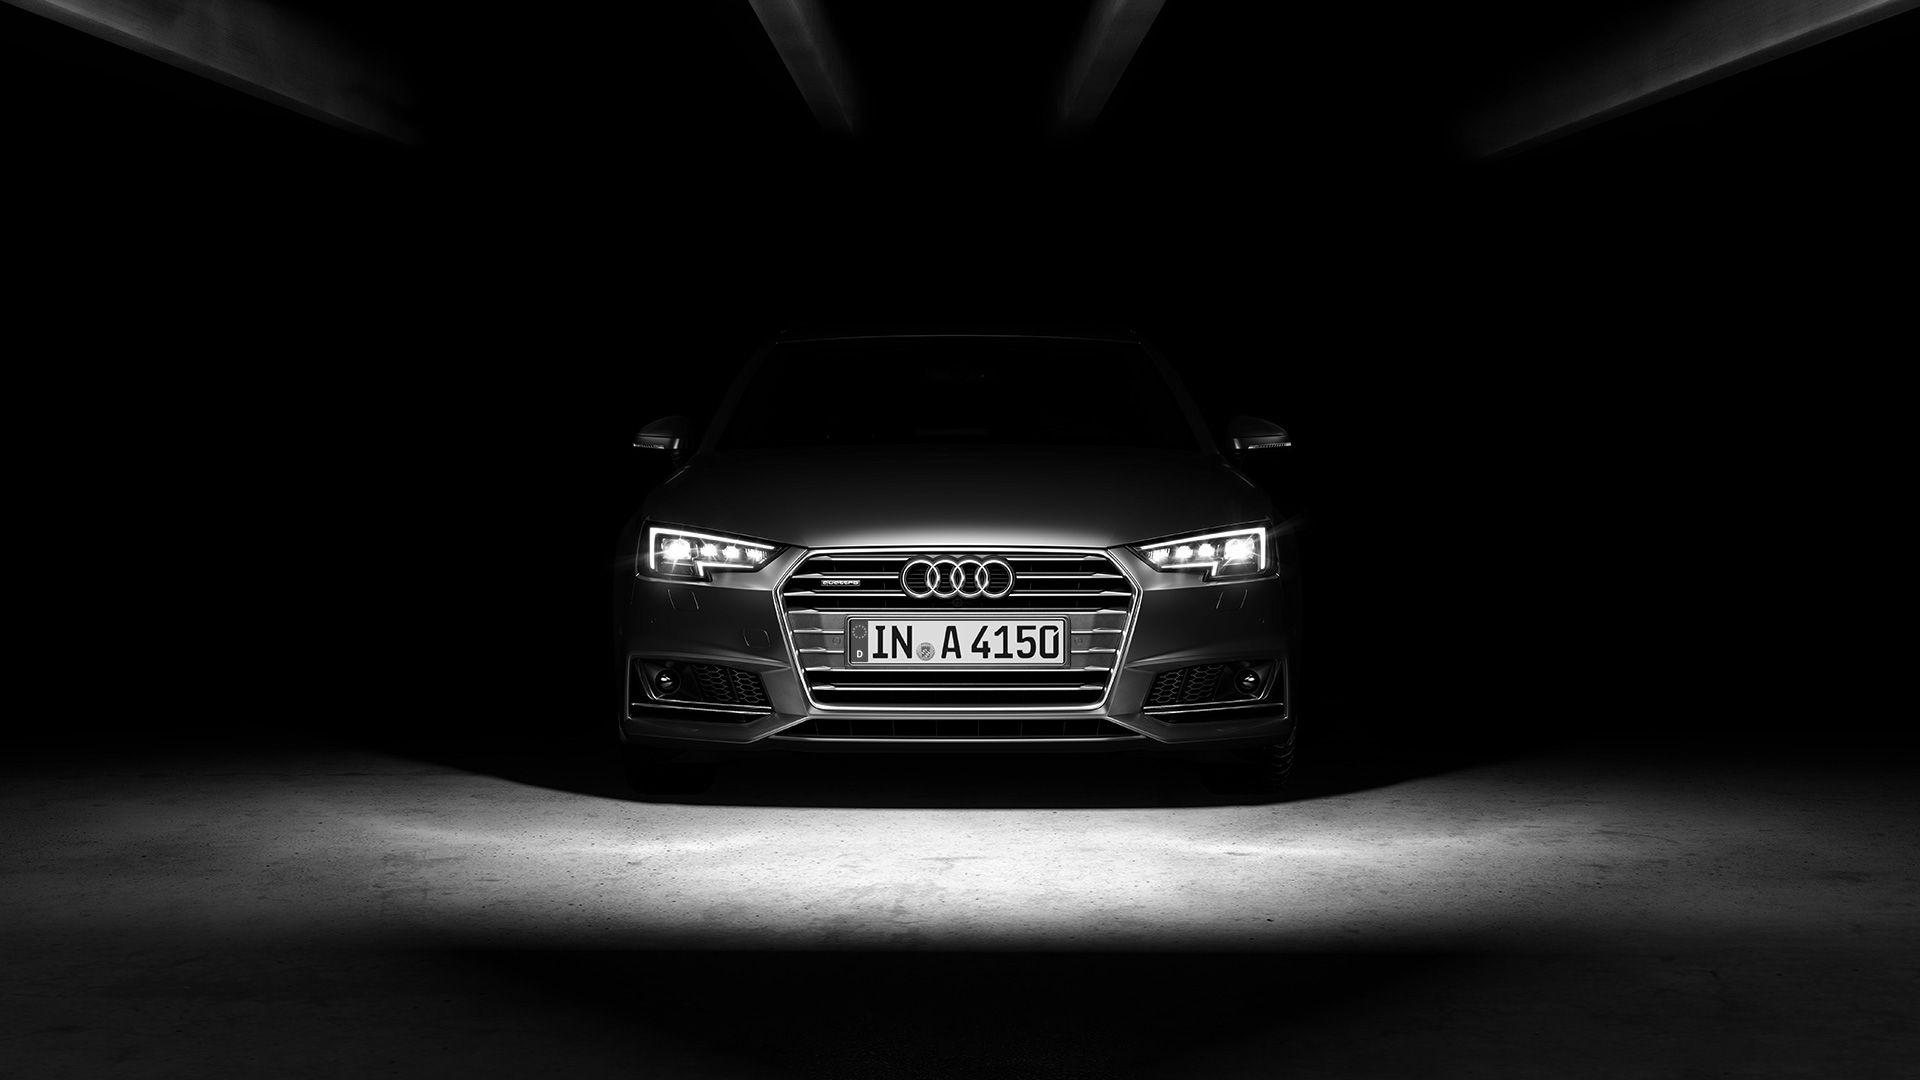 Audi A4 Wallpapers Top Free Audi A4 Backgrounds